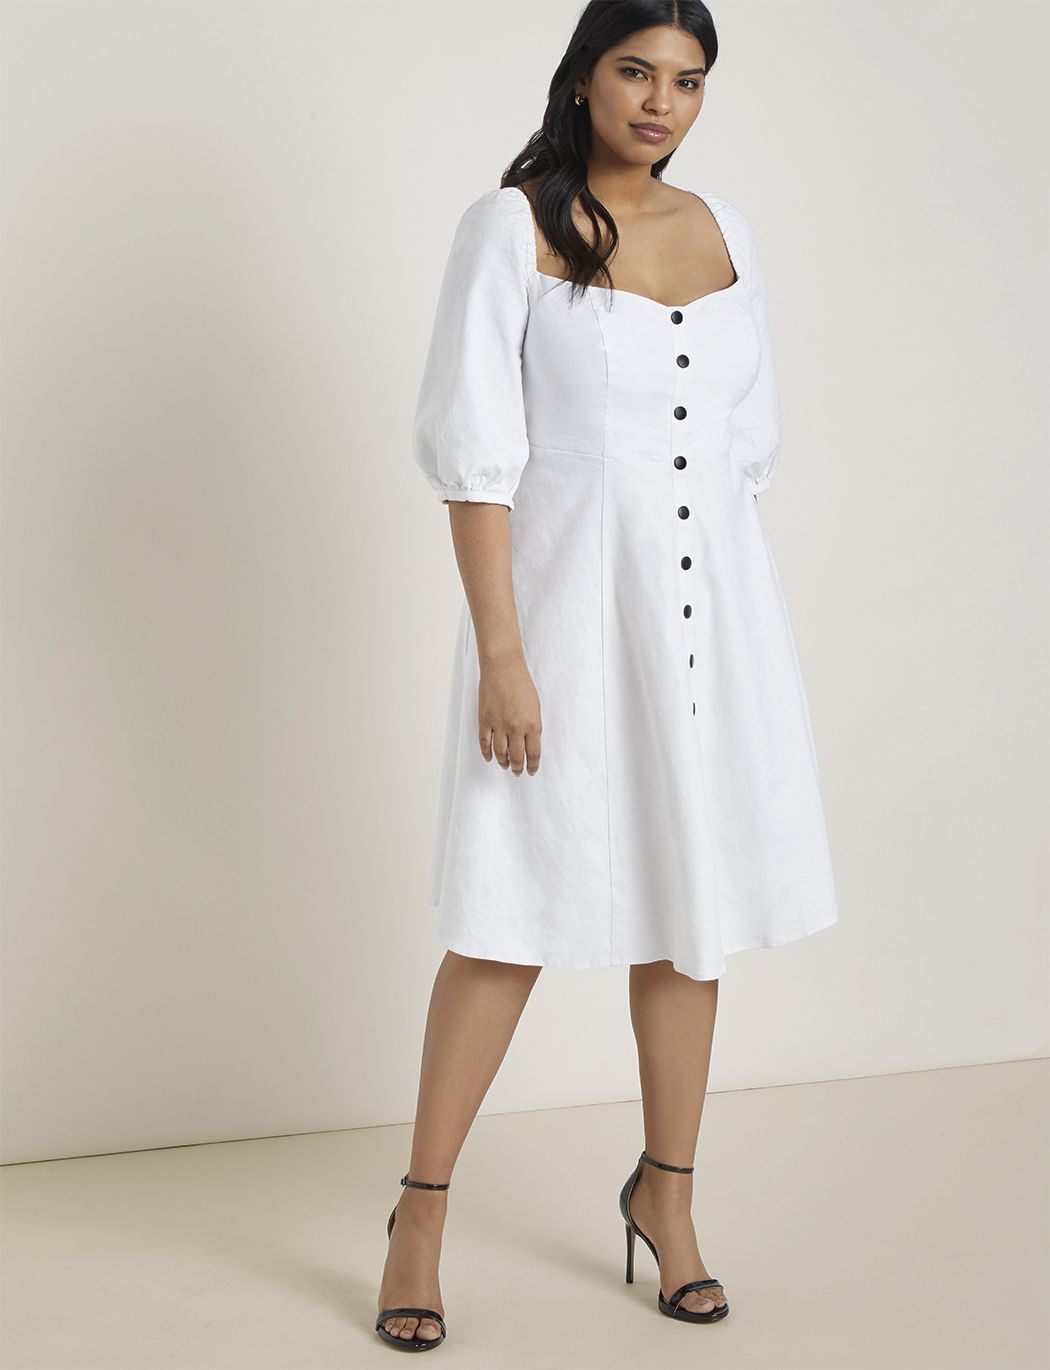 Button Front Puff Sleeve Dress Women S Plus Size Dresses Eloquii Plus Size Spring Dresses Plus Size Outfits Puffed Sleeves Dress [ 1370 x 1050 Pixel ]